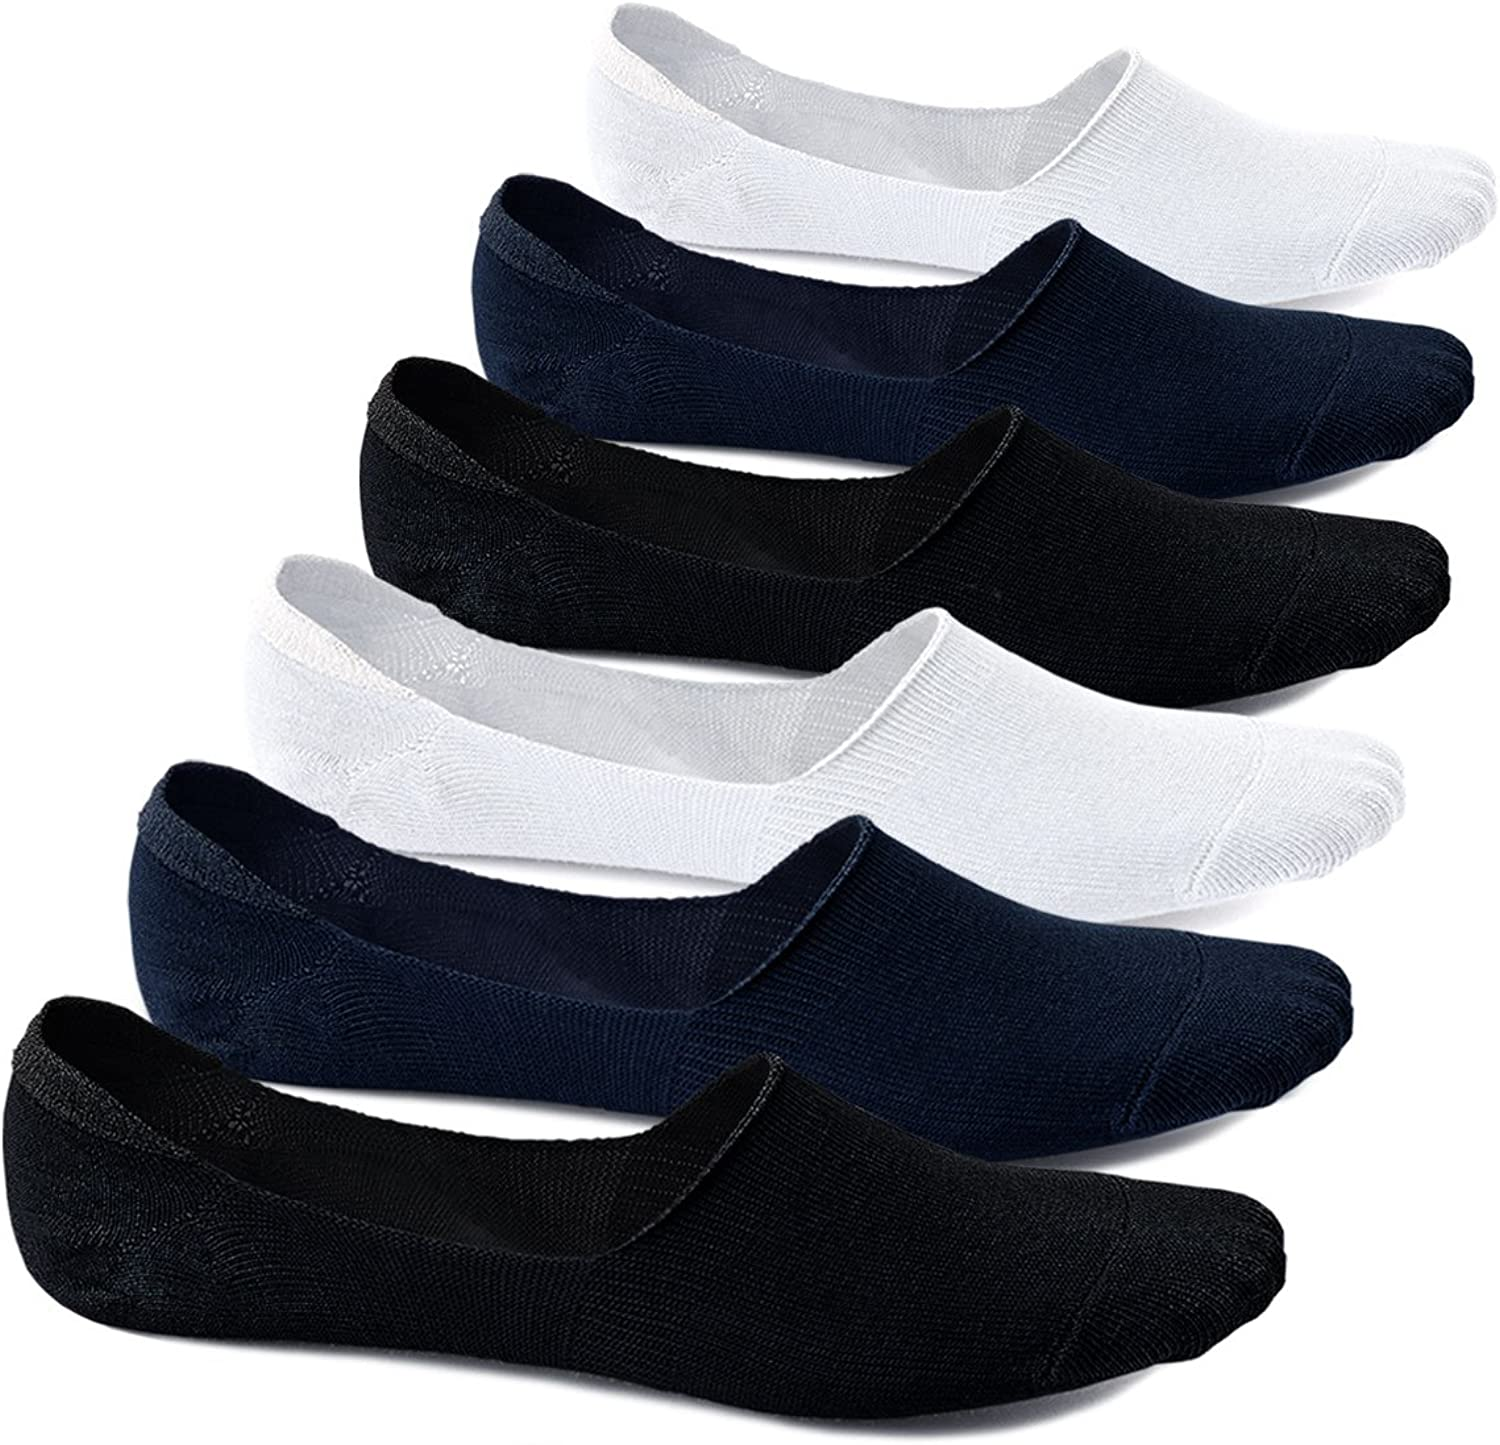 Men No Show Low Cut Socks 4 6 Pairs Cotton Non-slip Invisible Flat Boat Liner Sock